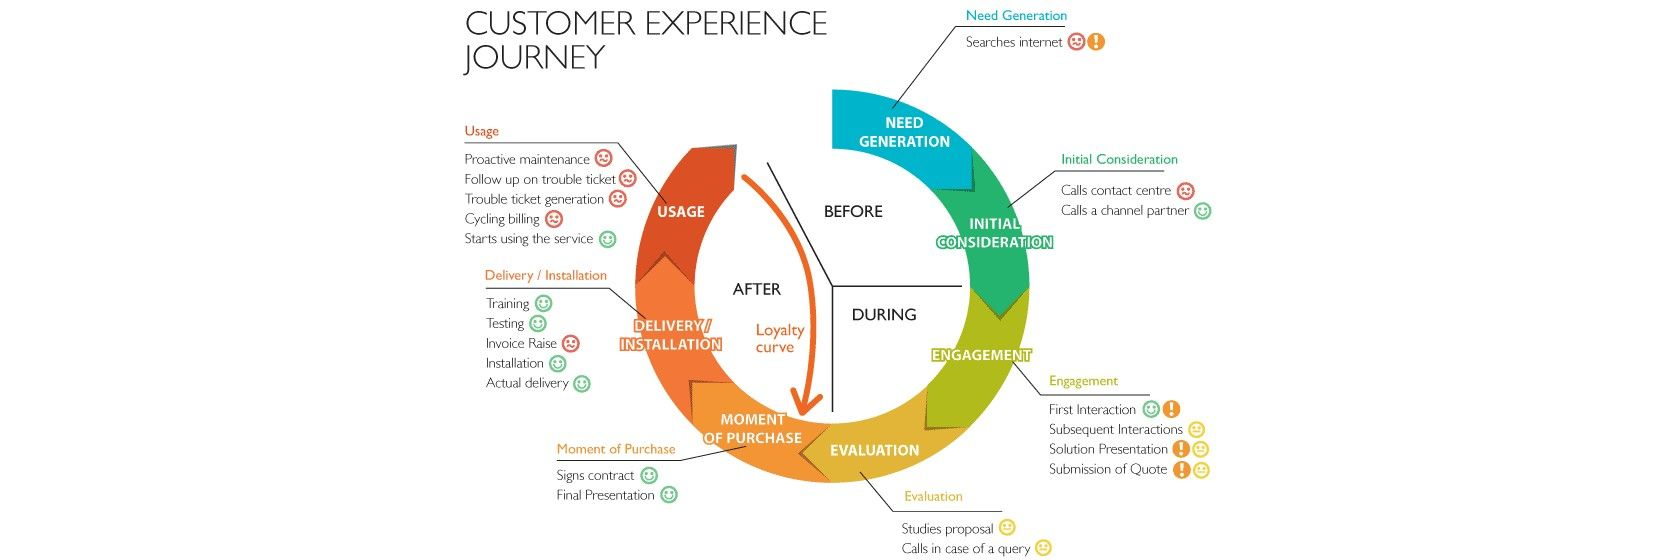 Four Keys to Improving Customer Experiences Long-Term